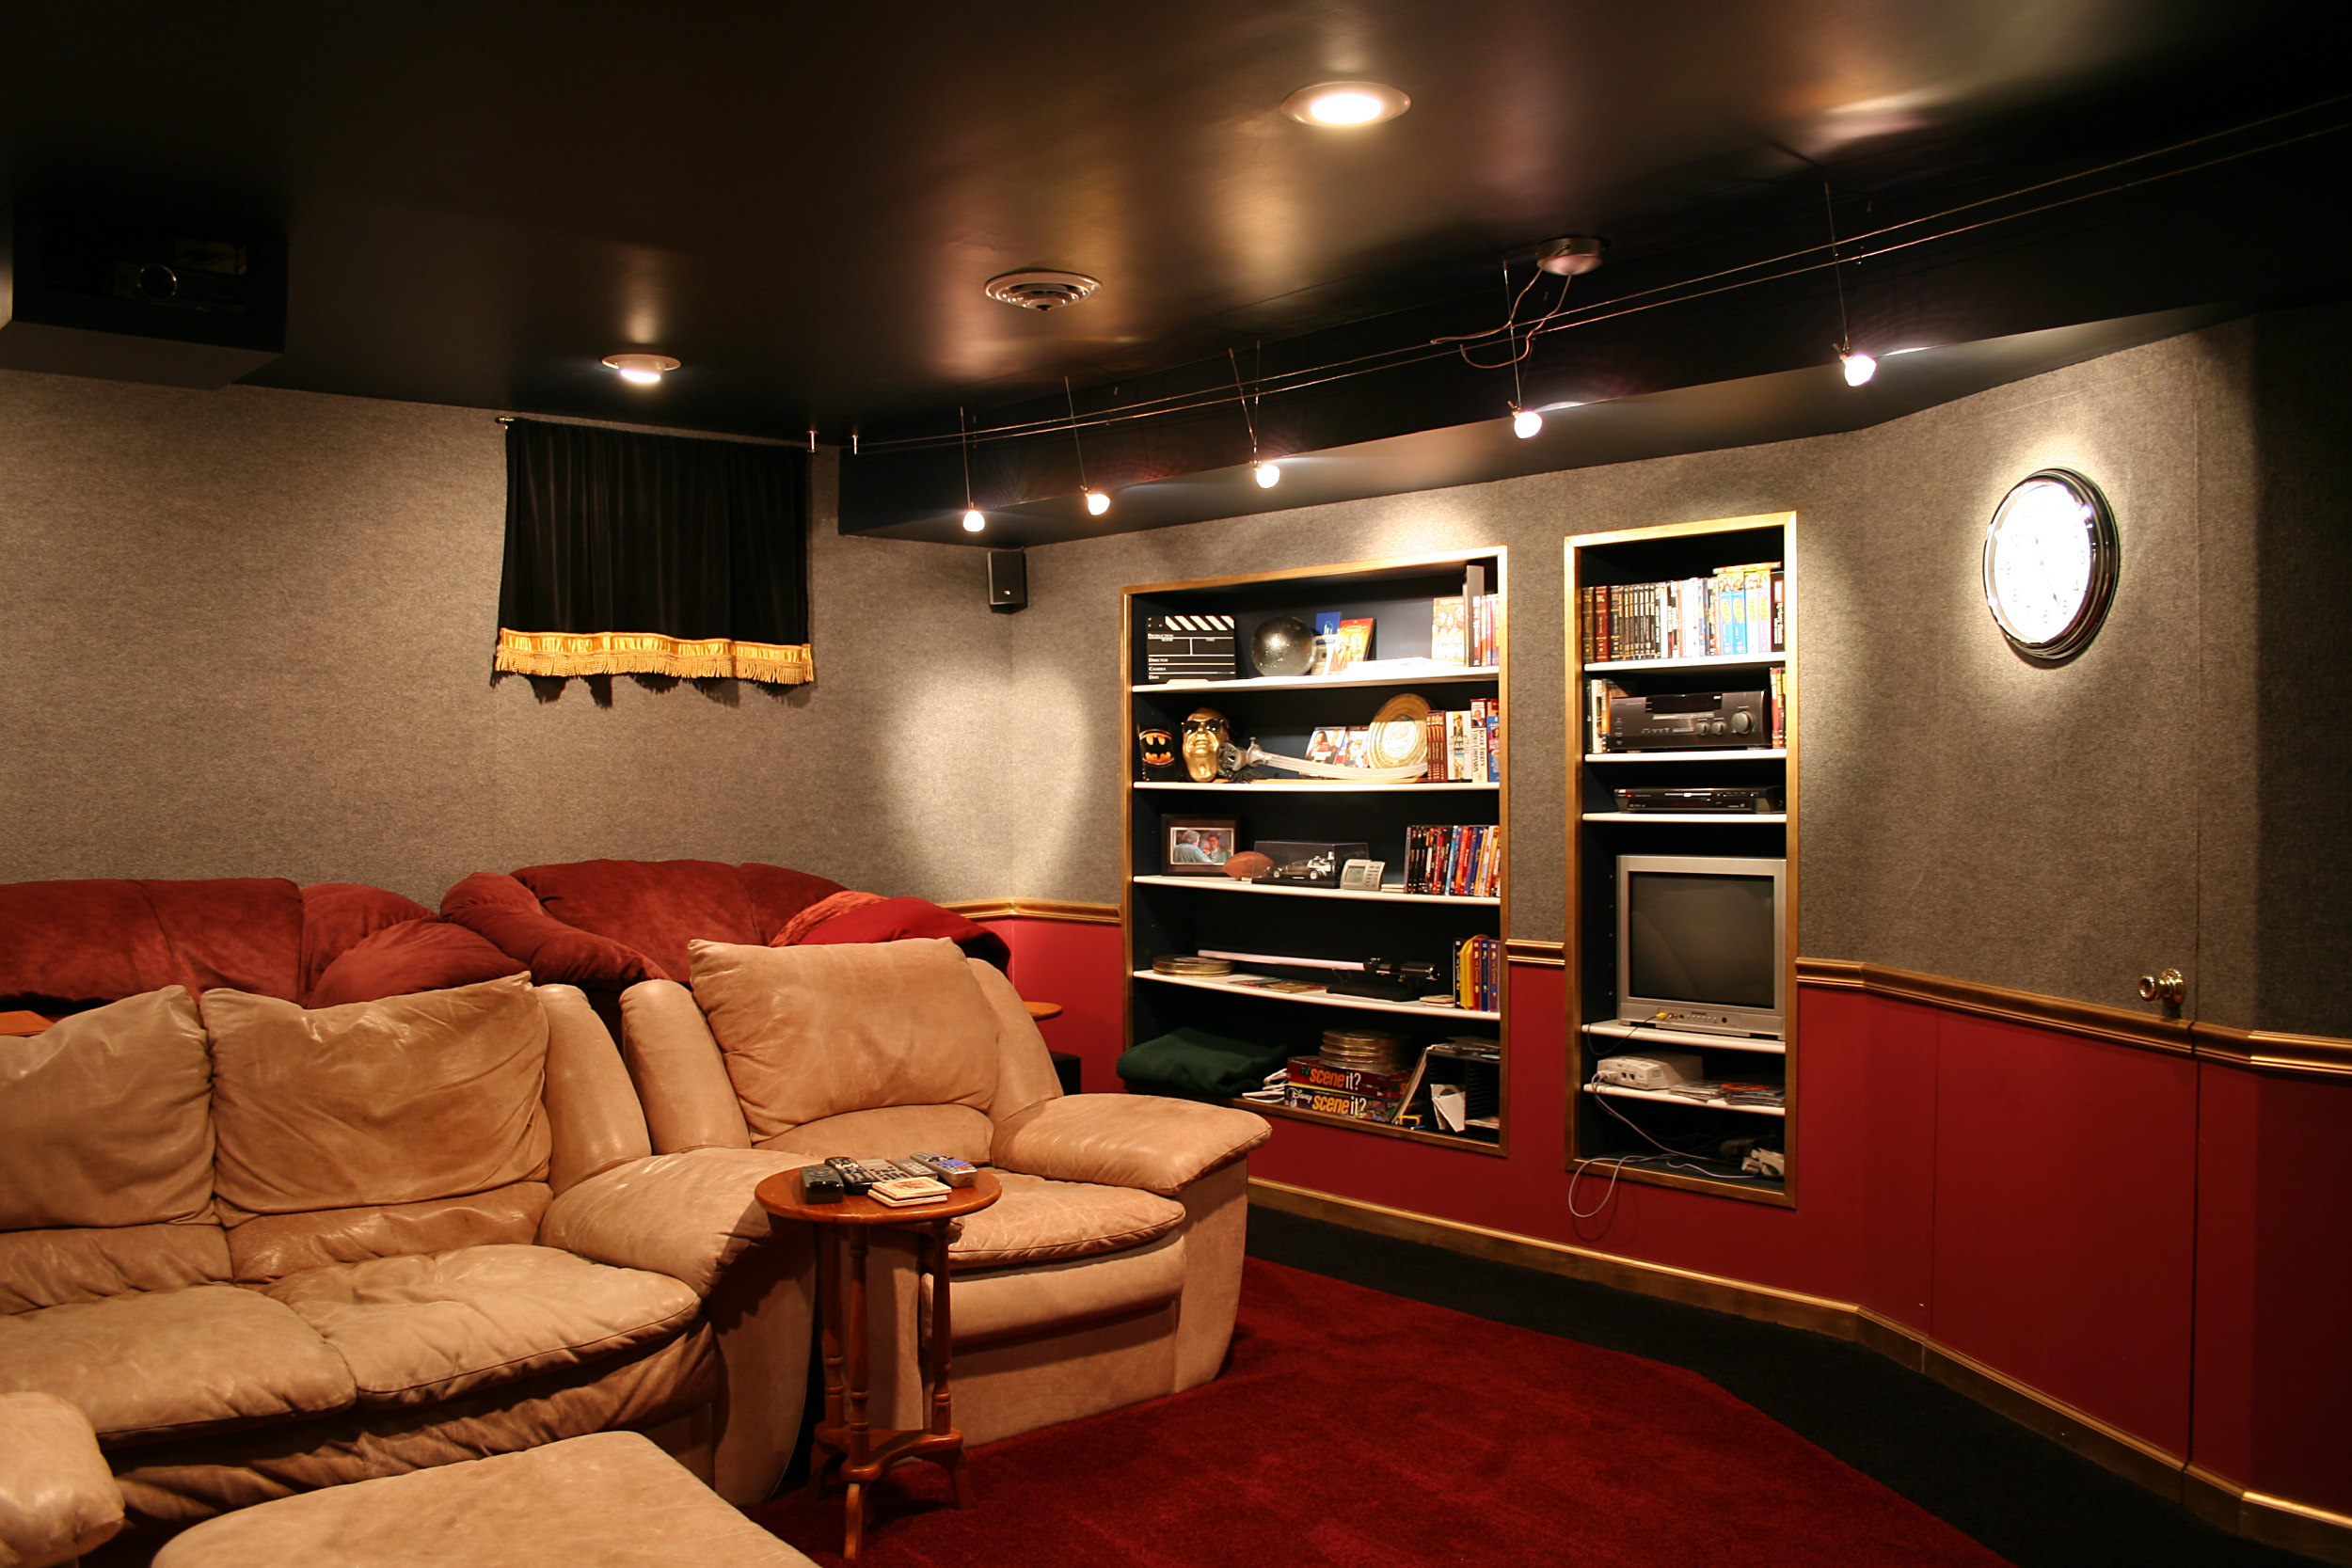 How to make home theater room - The 25 Most Amazing Home Theater Systems